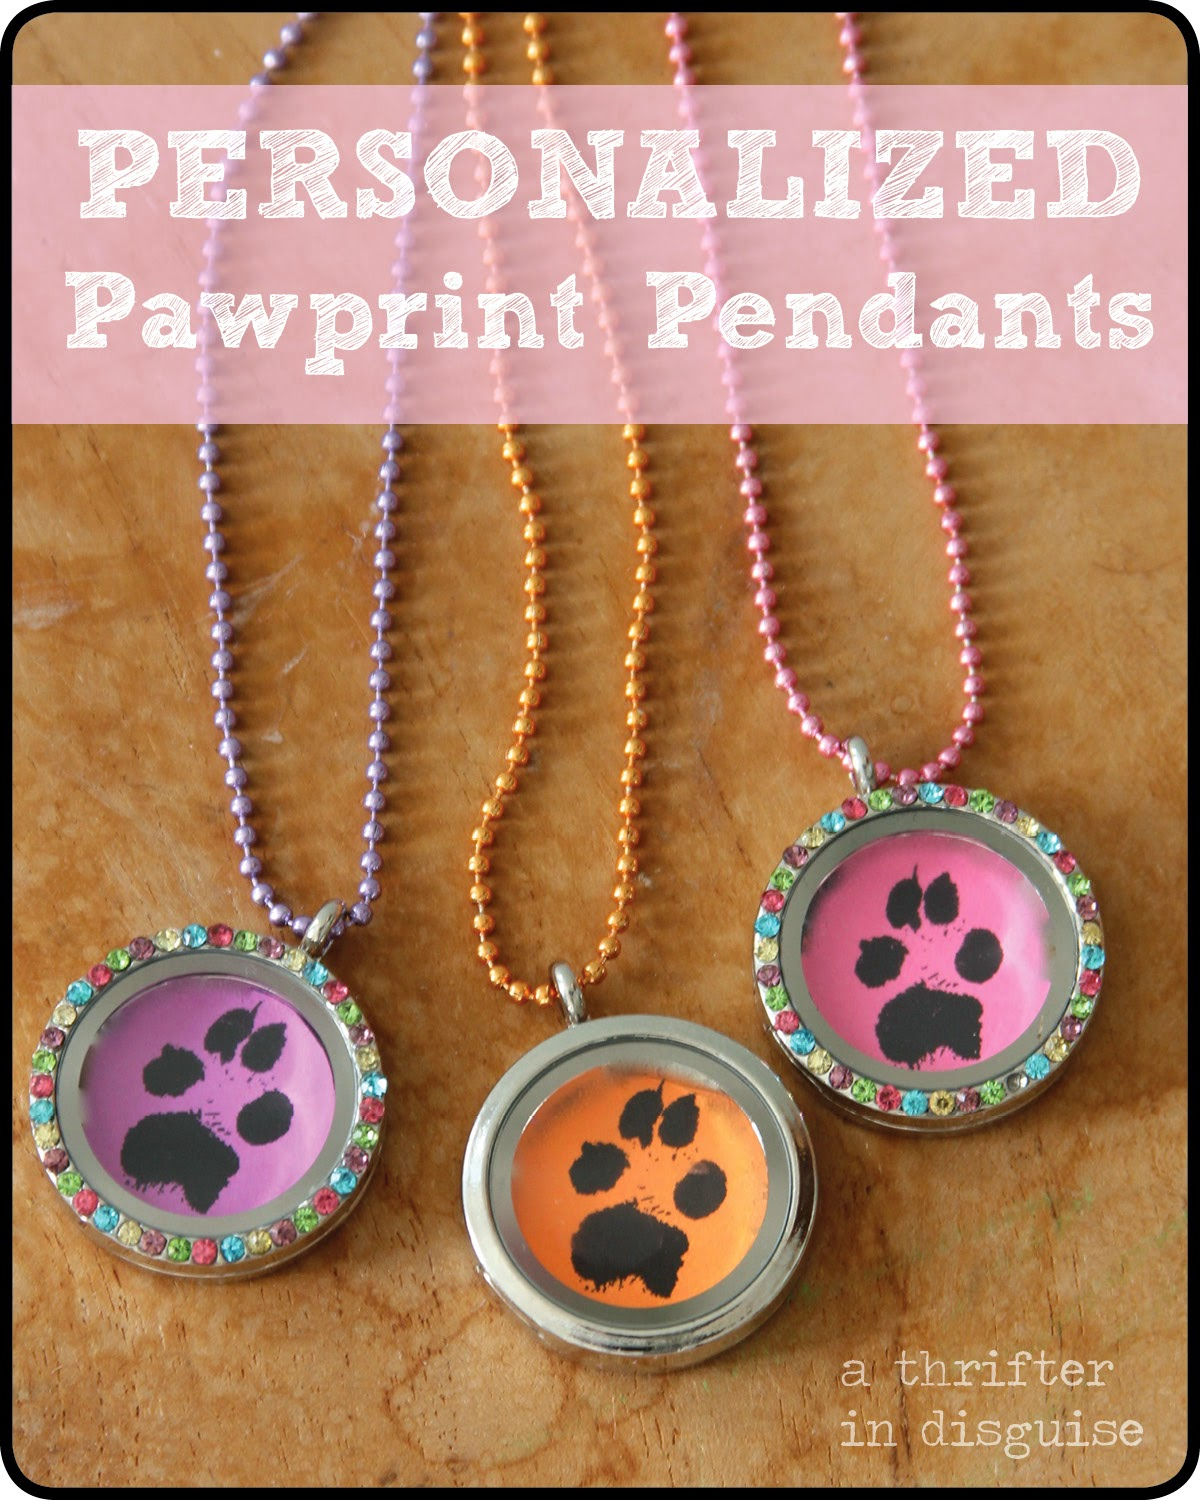 How to make you pet's paw print into a necklace